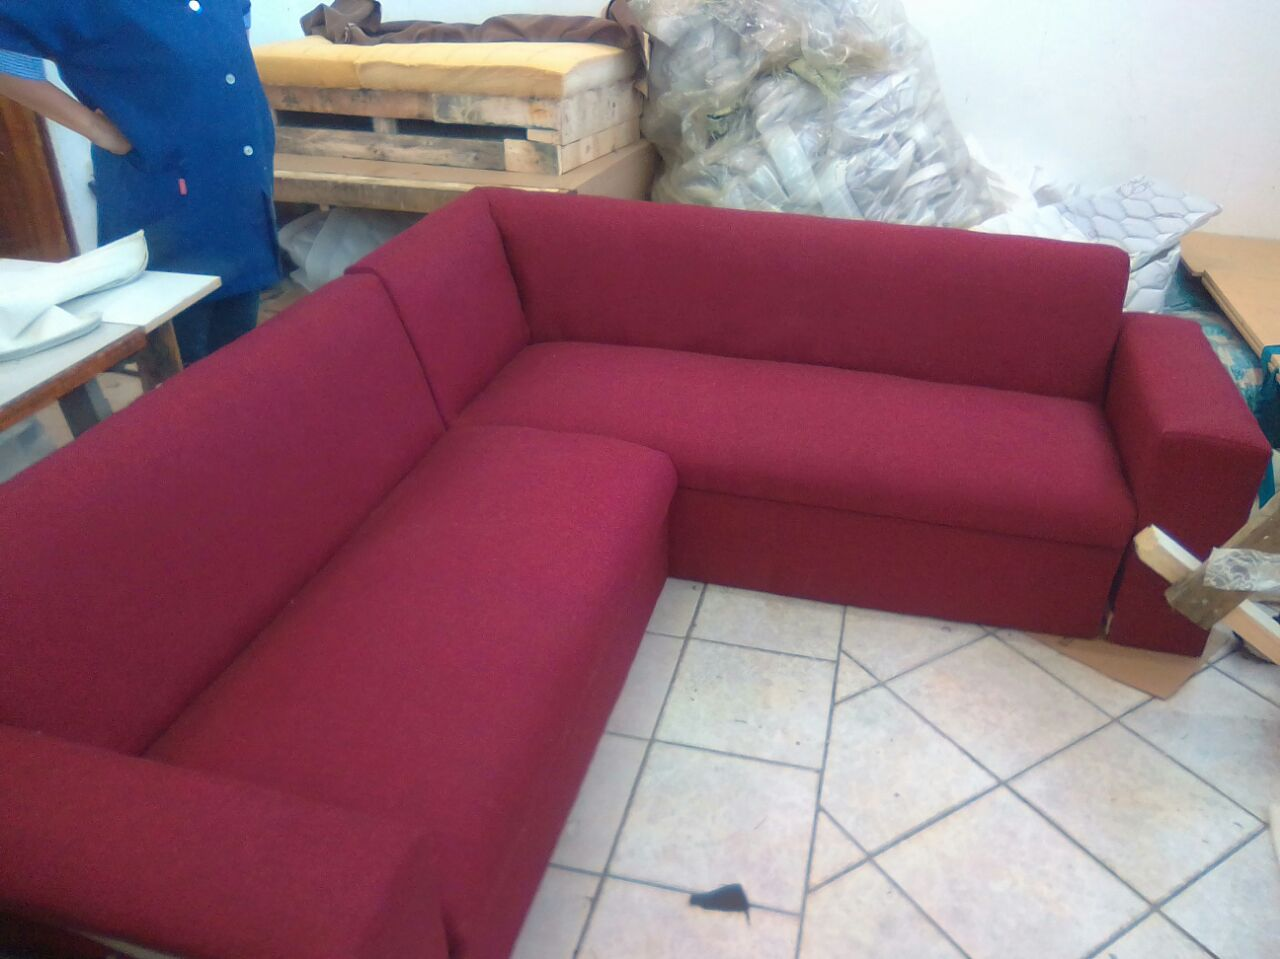 urgent sale! new red sofa